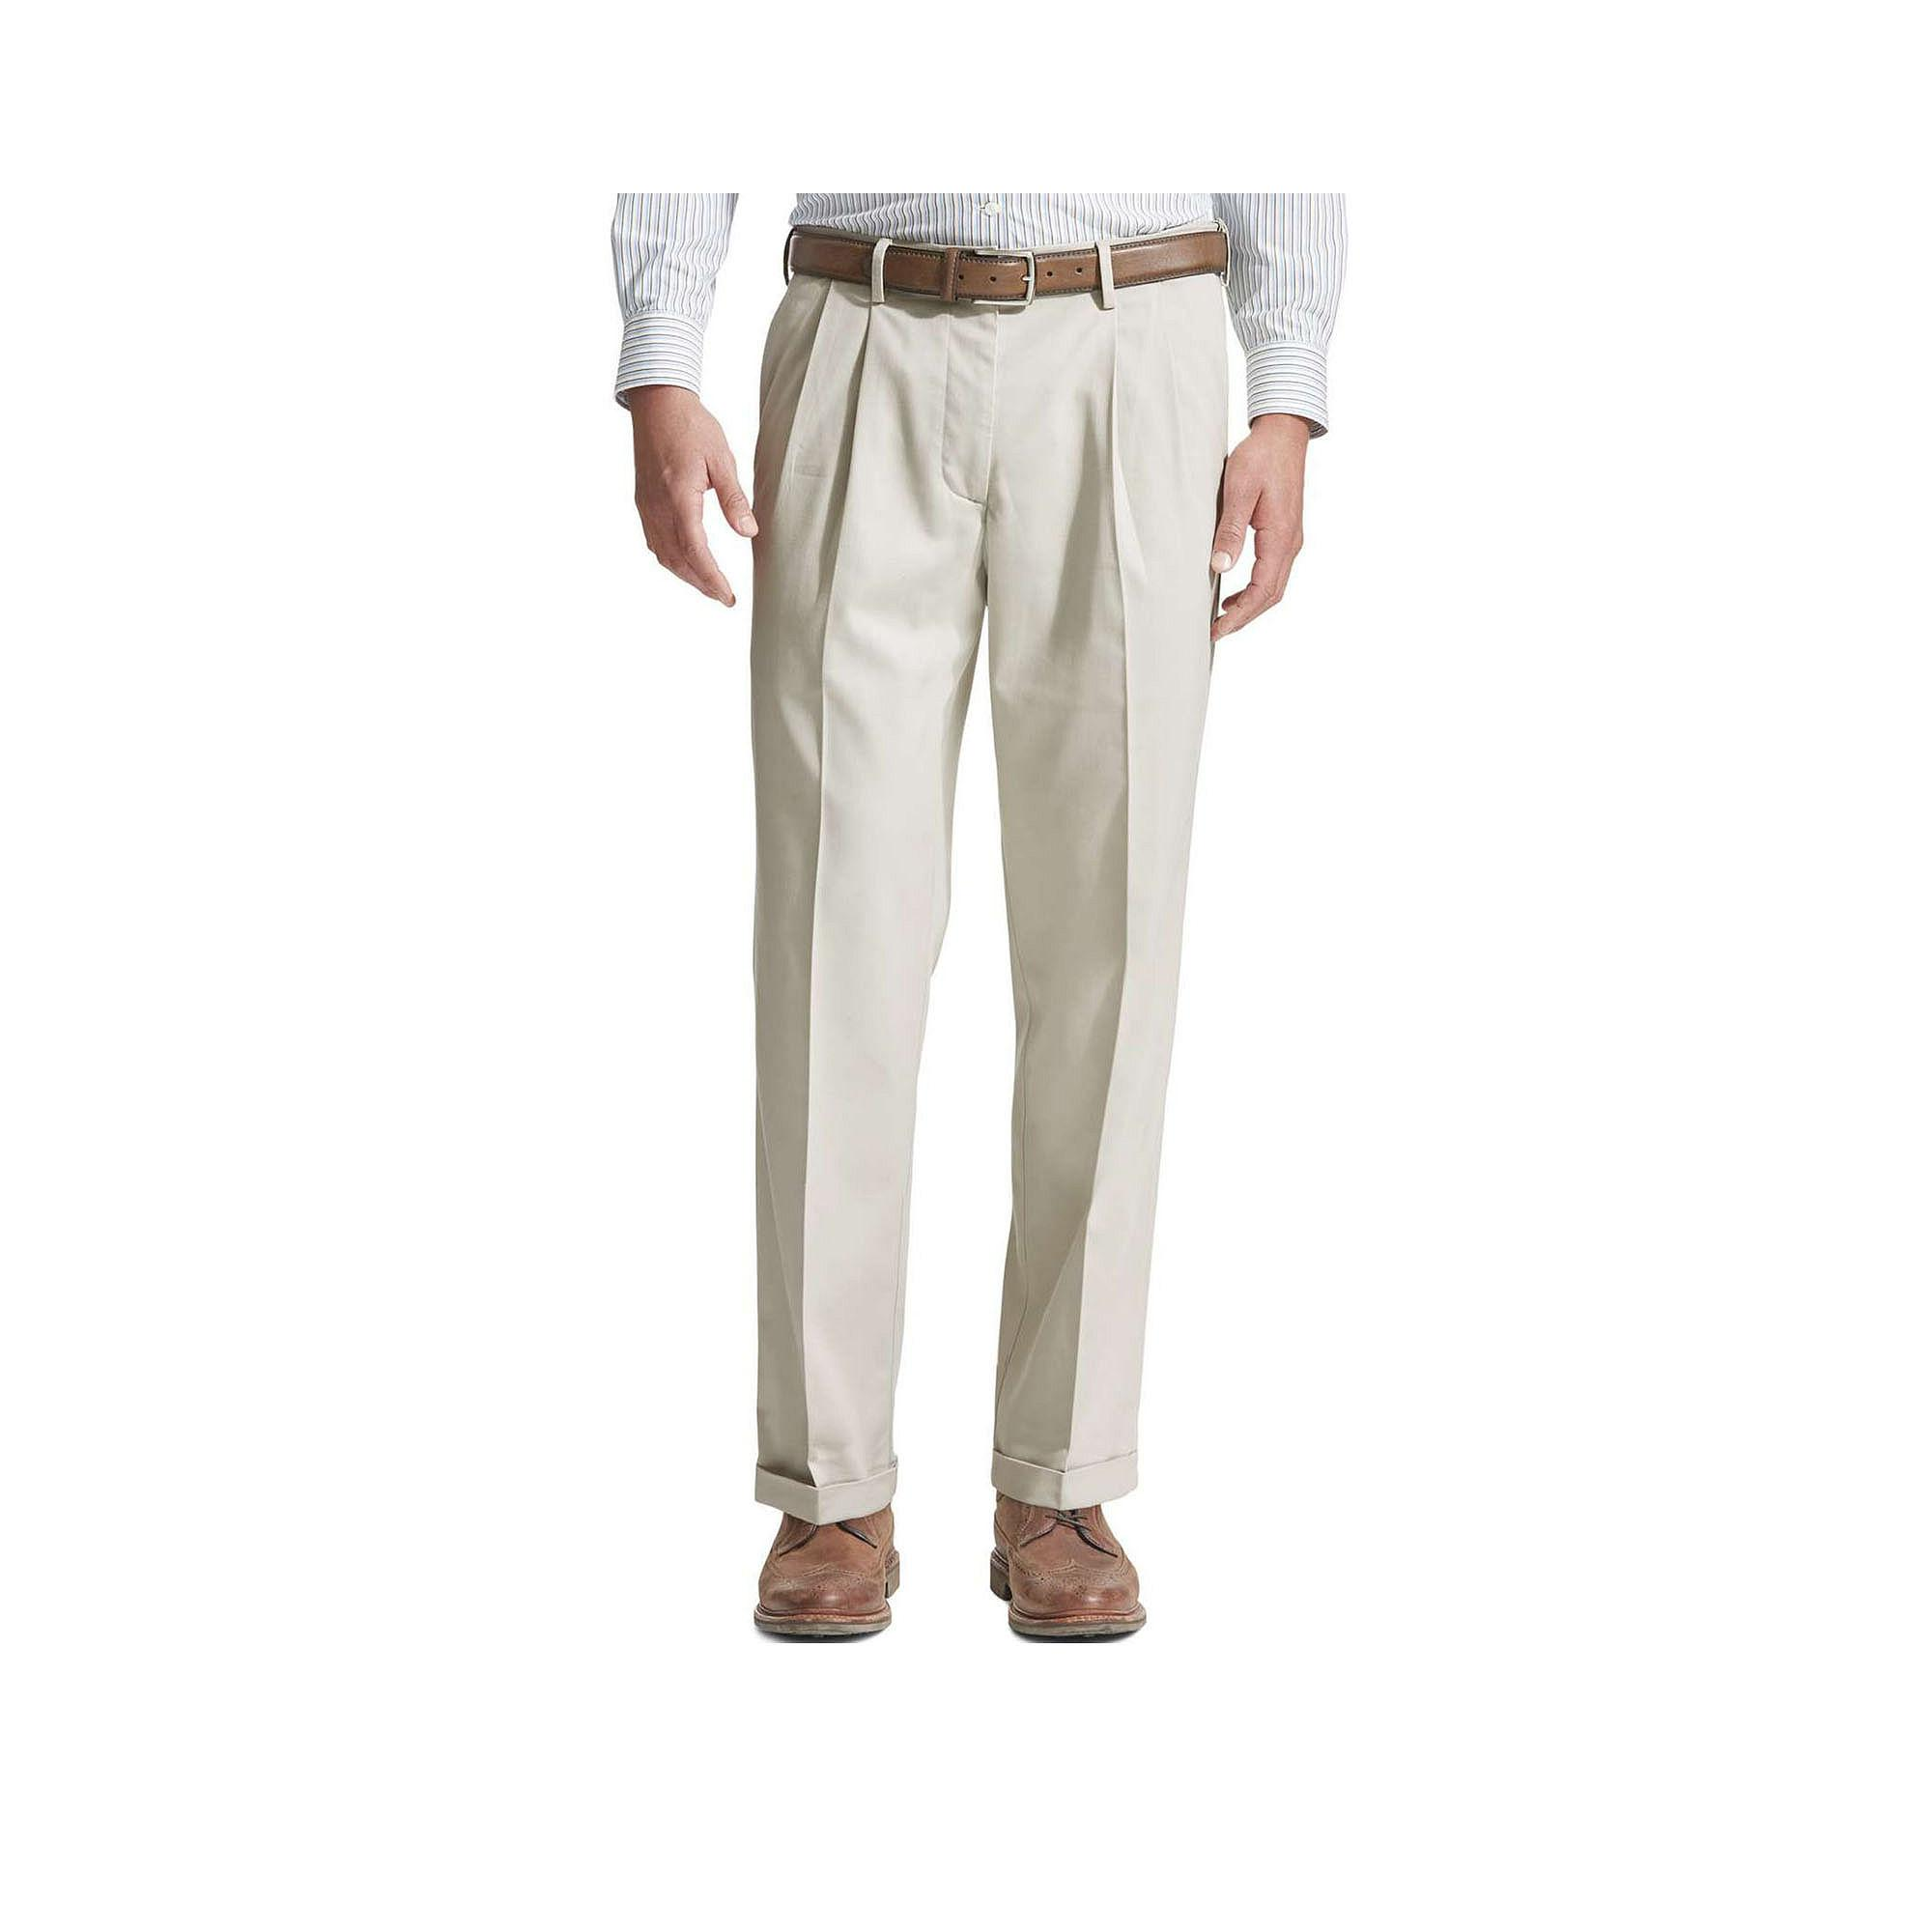 Dockers Comfort Khaki Relaxed Pleated Pants